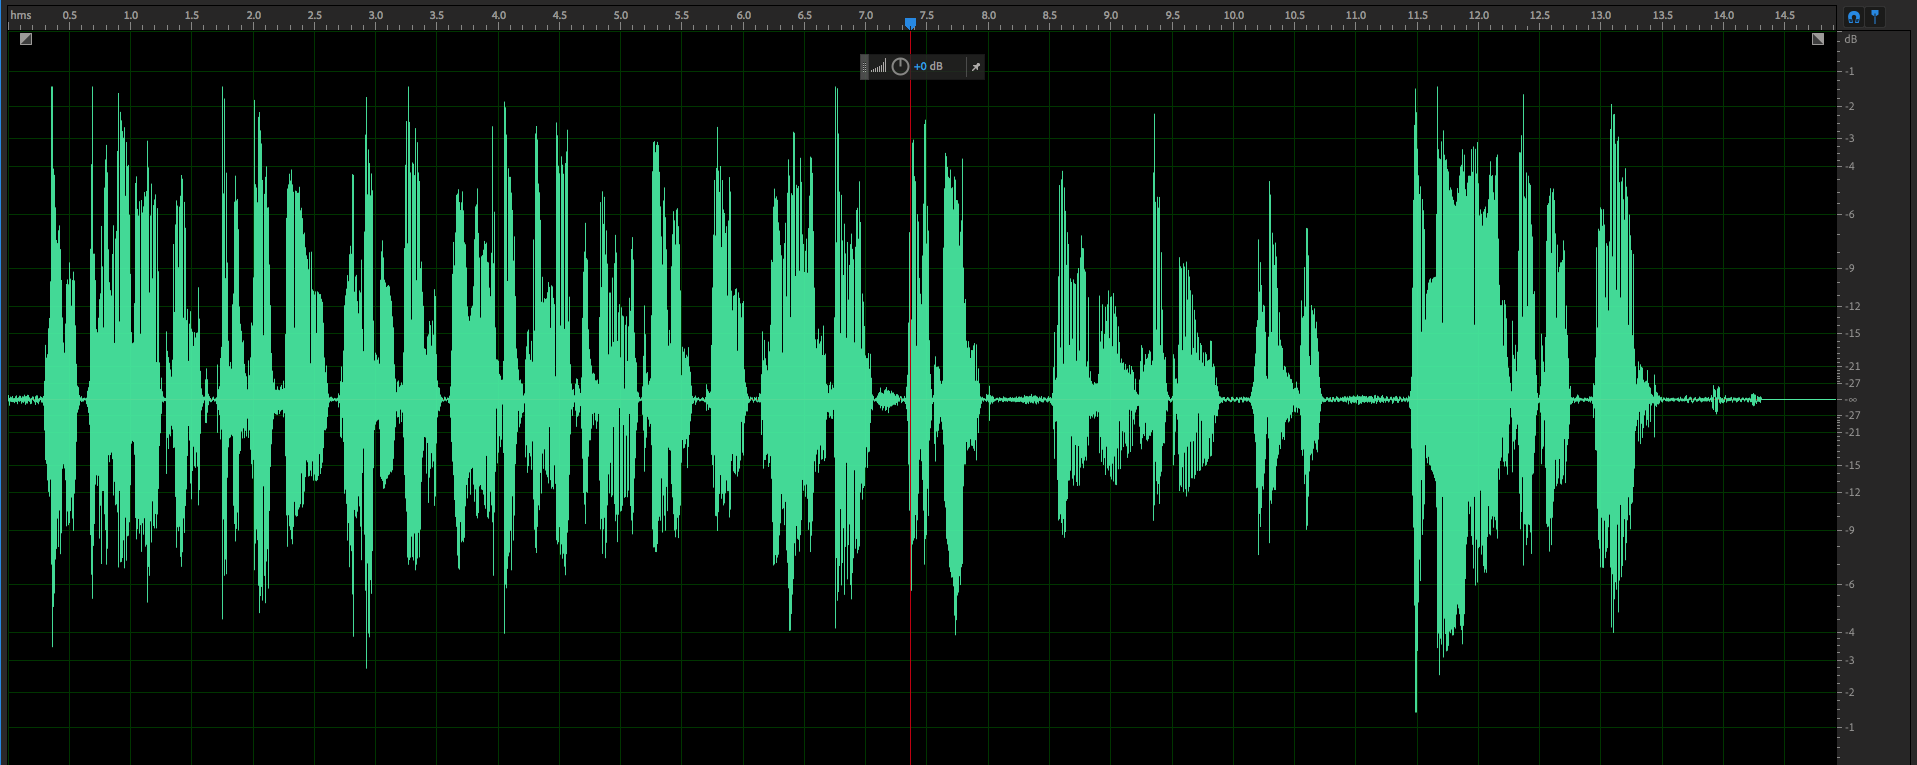 The same sample, now with compression applied.